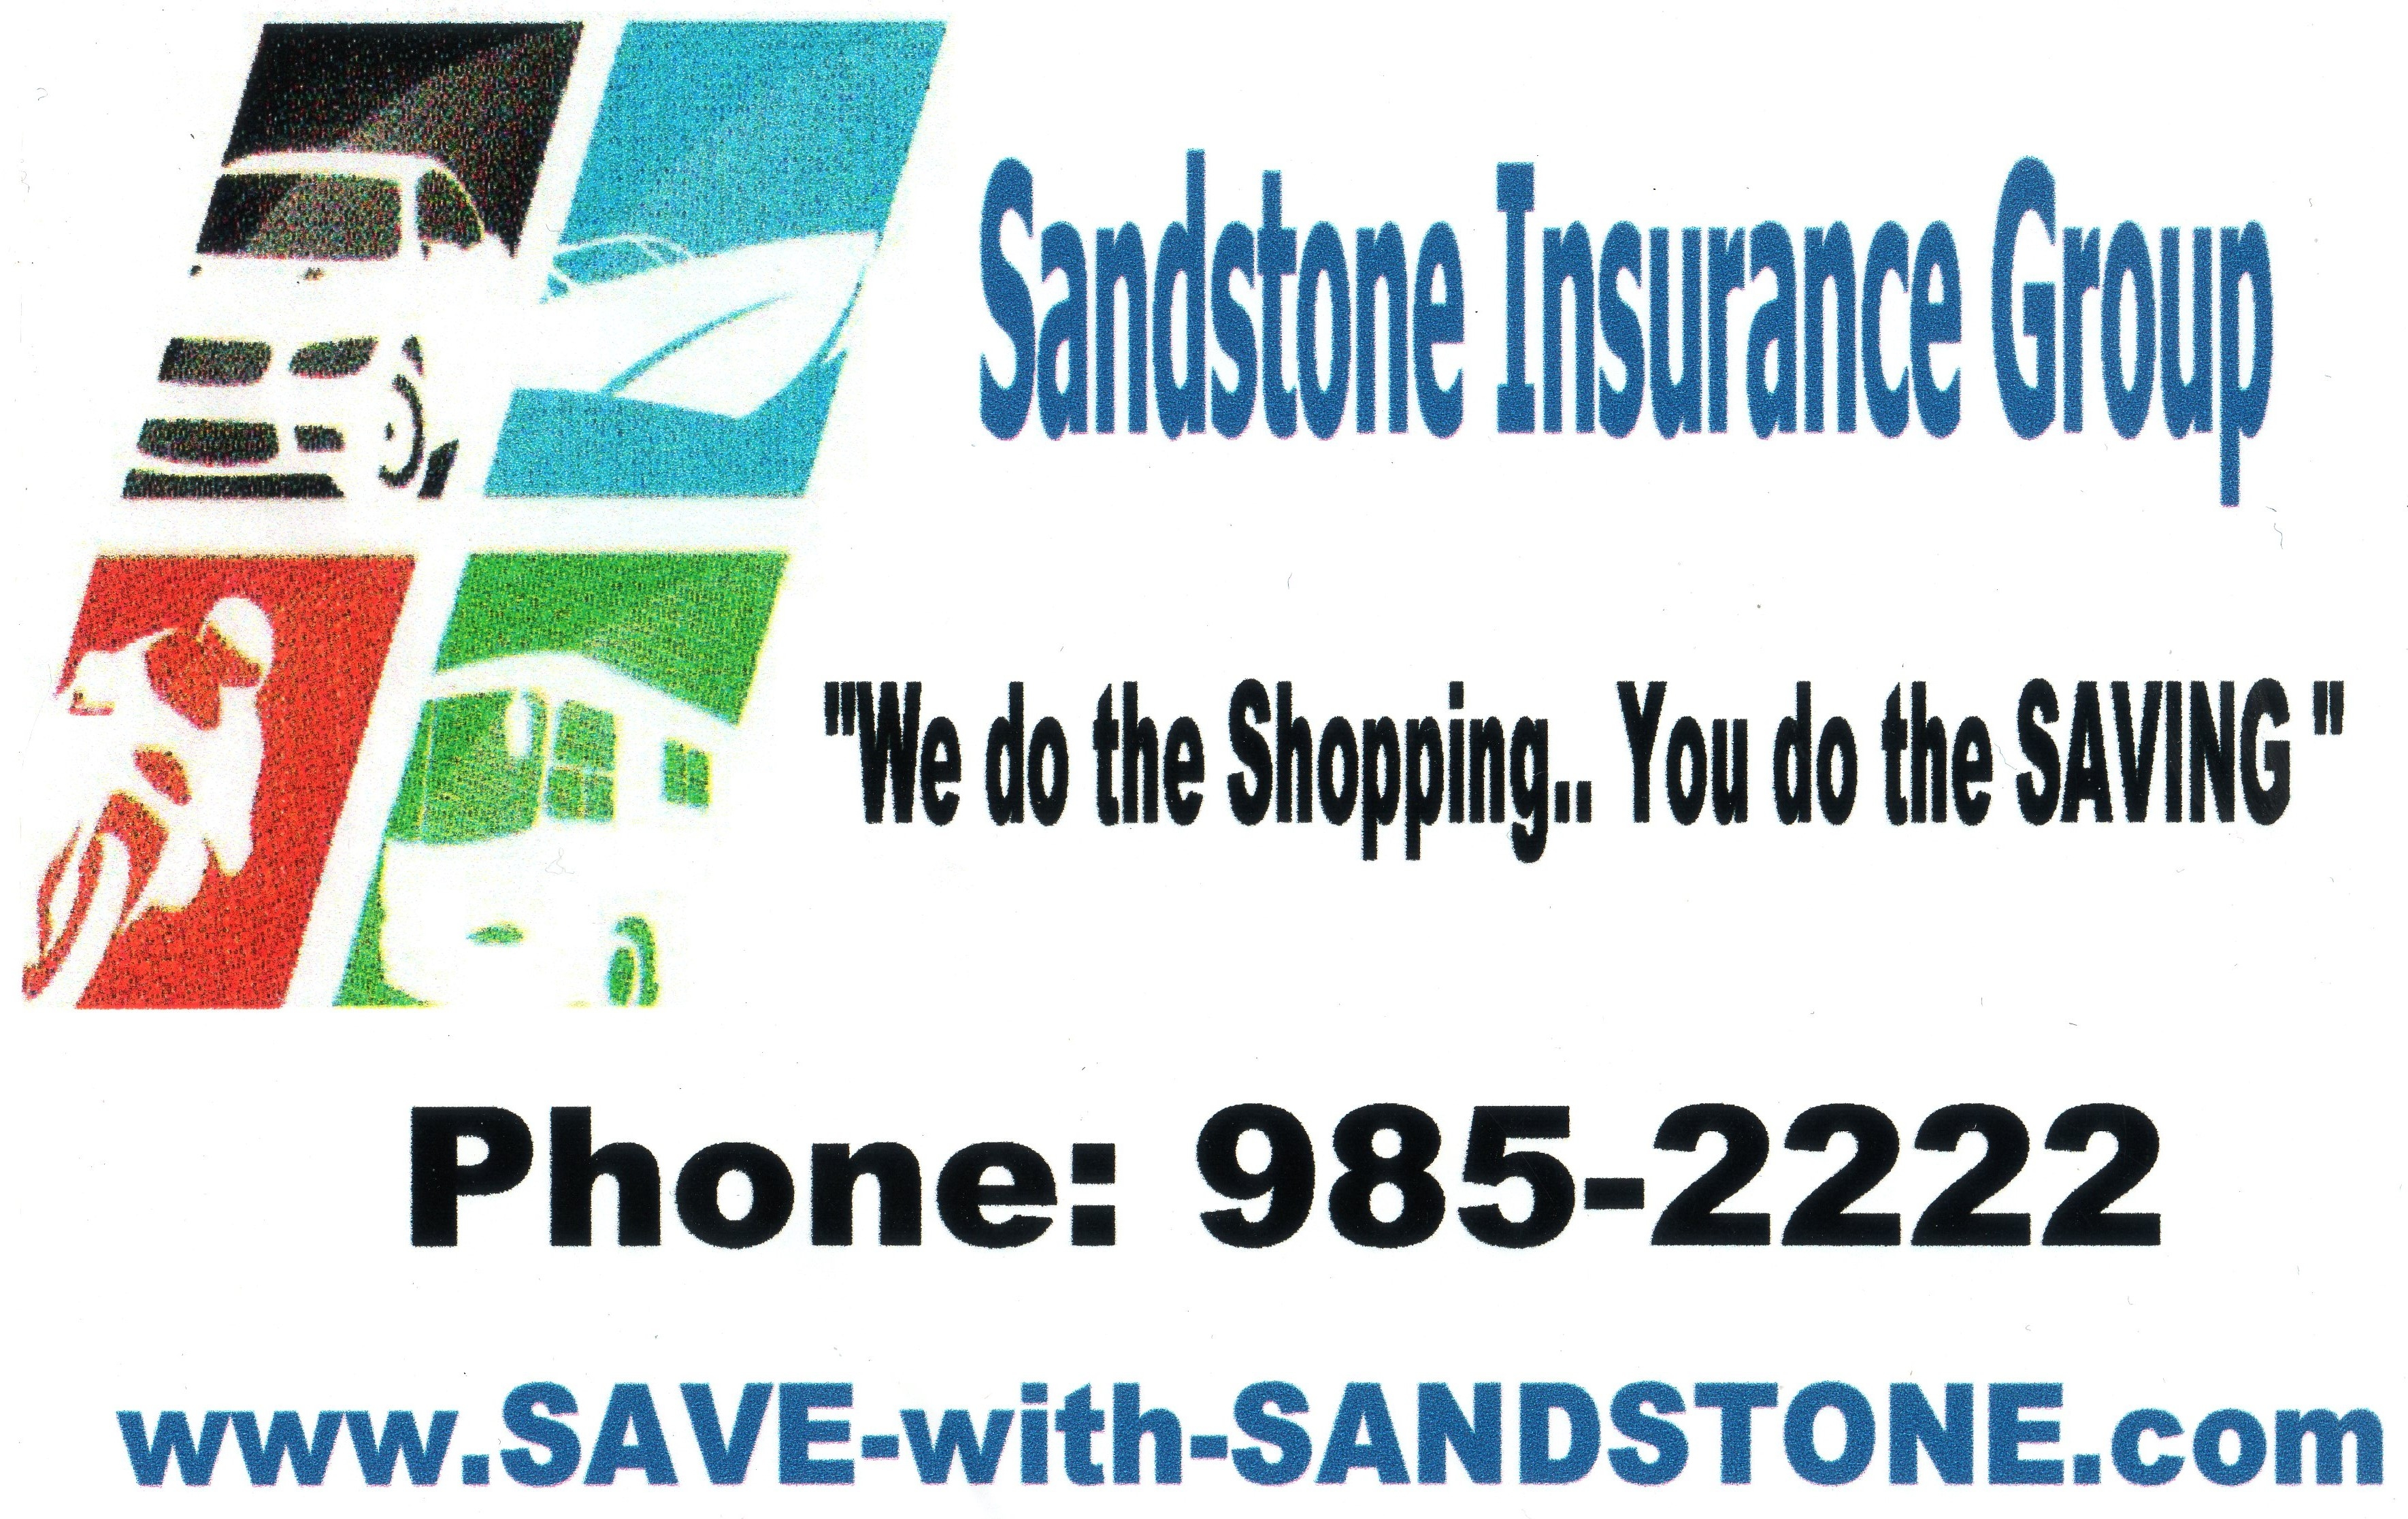 Motorcycle Stores Near Me >> Sandstone Insurance Group Coupons near me in Sheffield Village | 8coupons